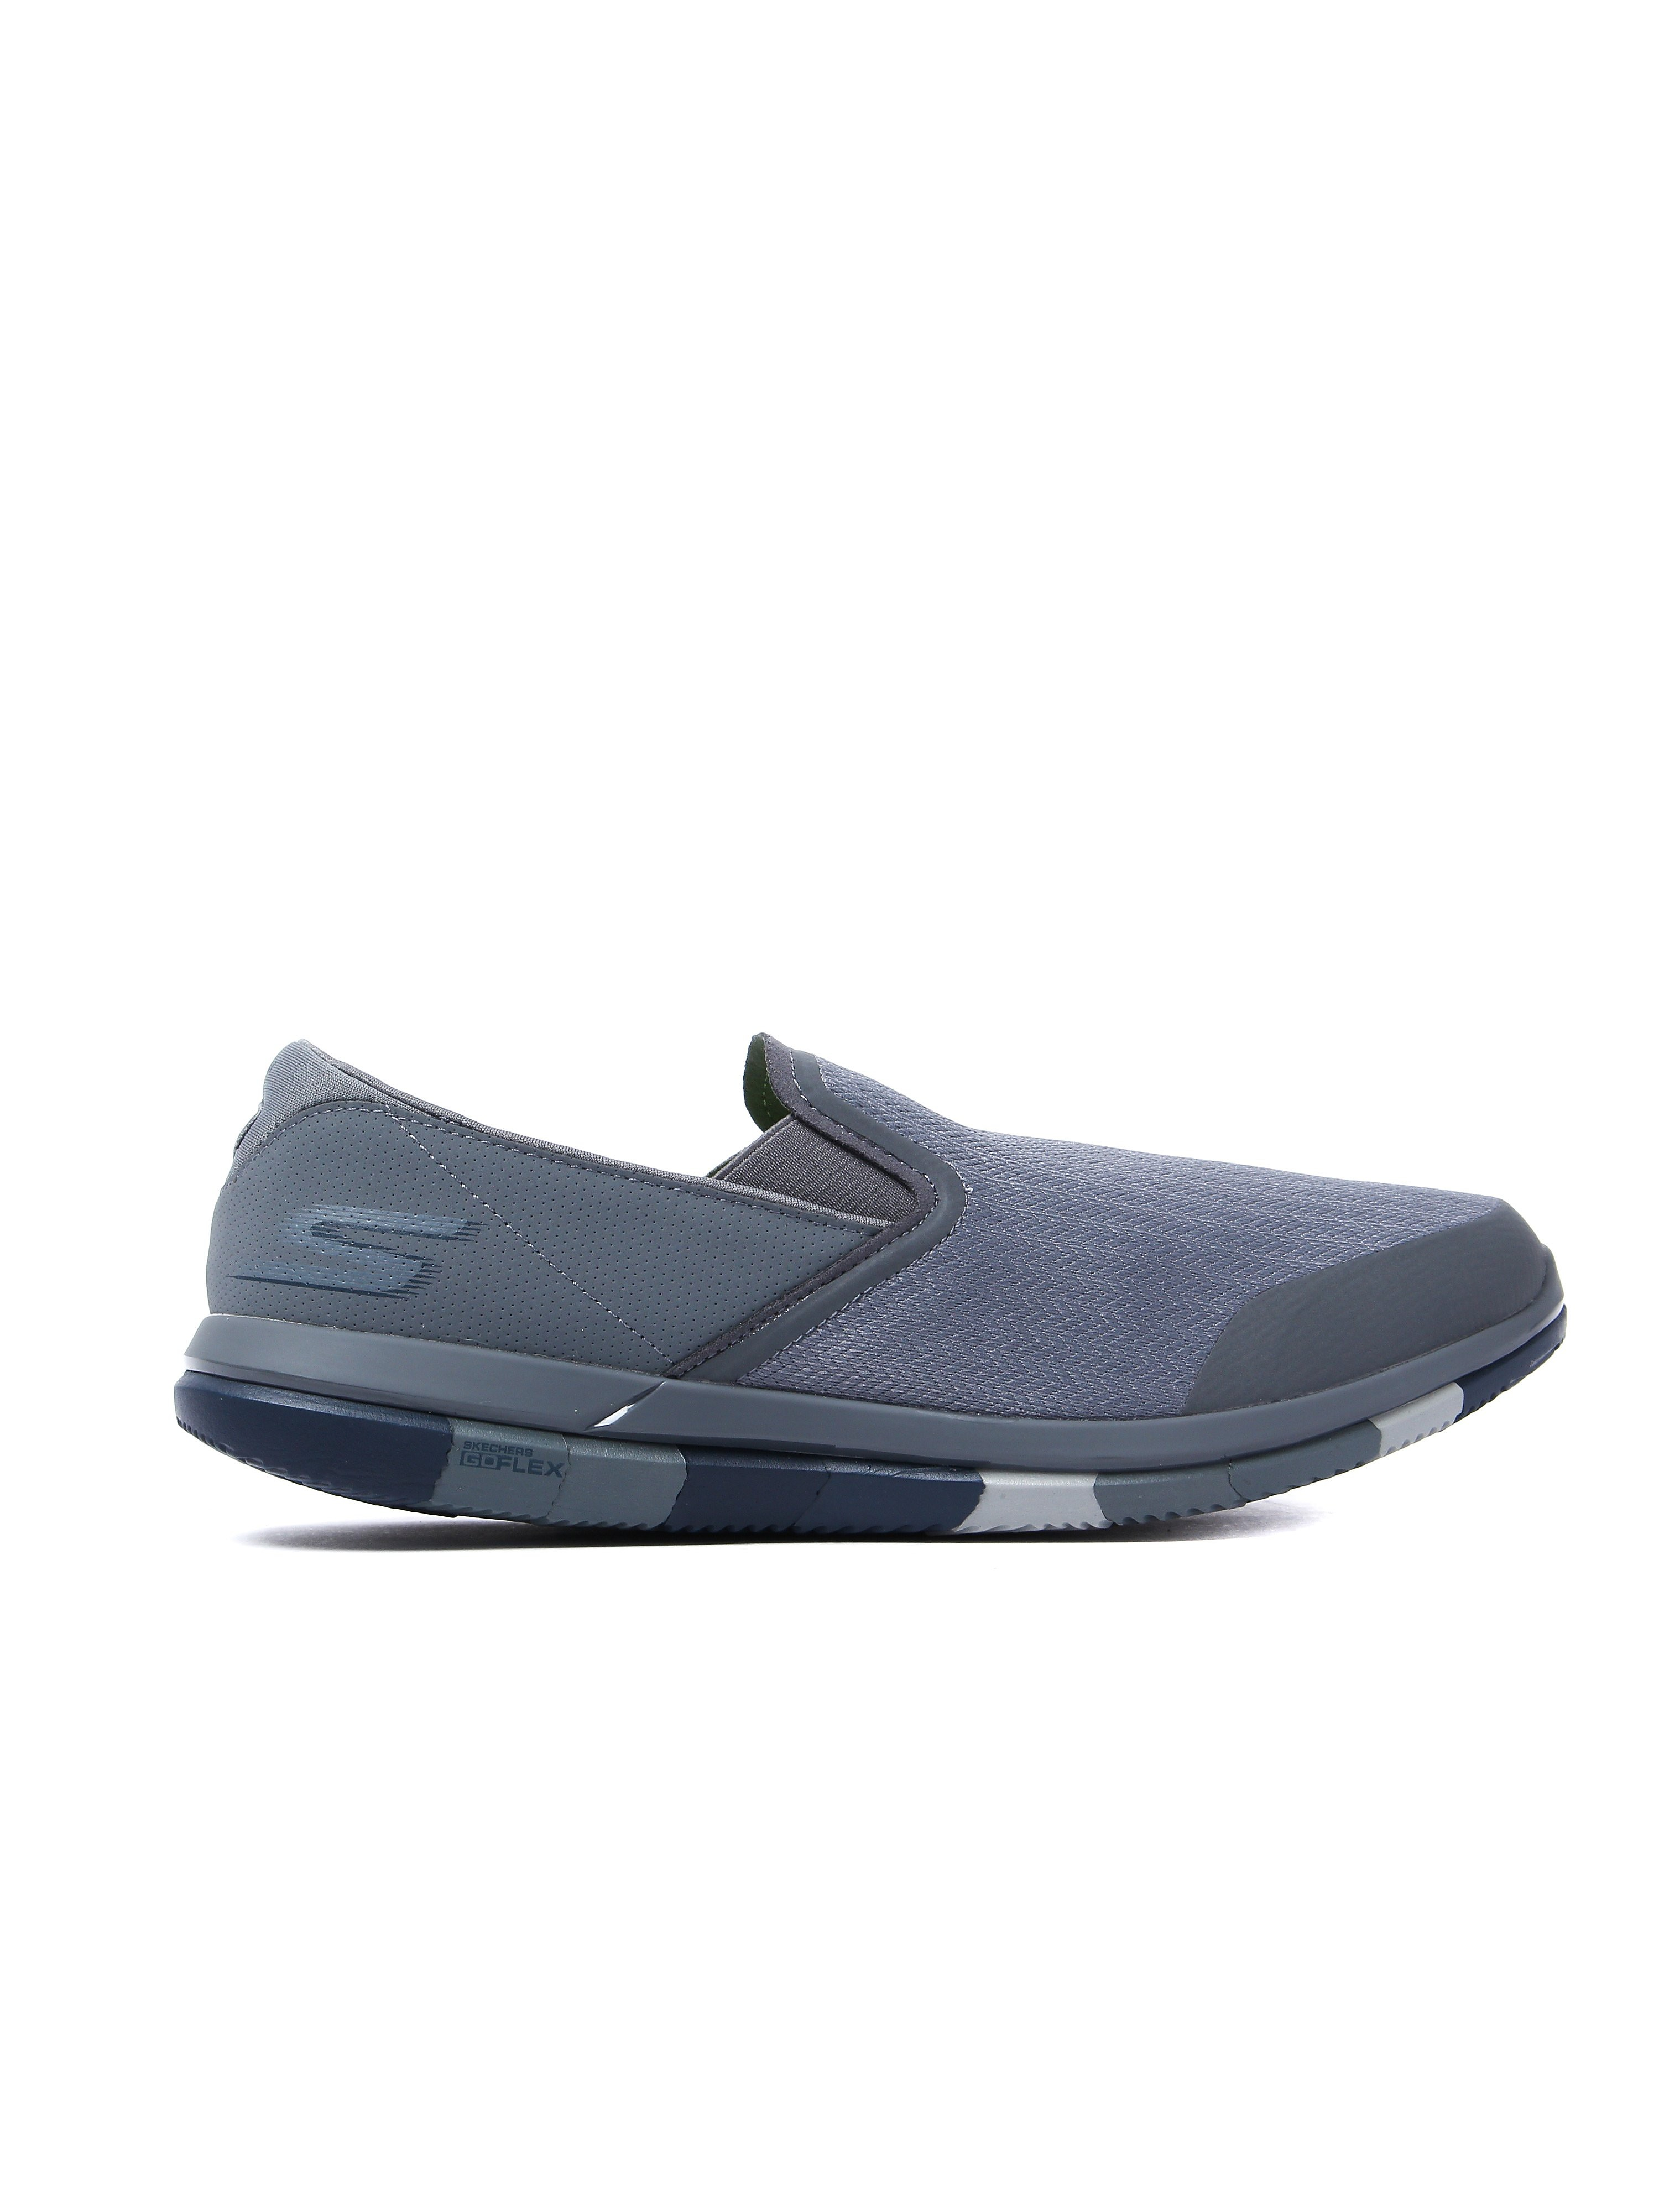 Skechers Men's Go Flex Trainers - Charcoal/Navy